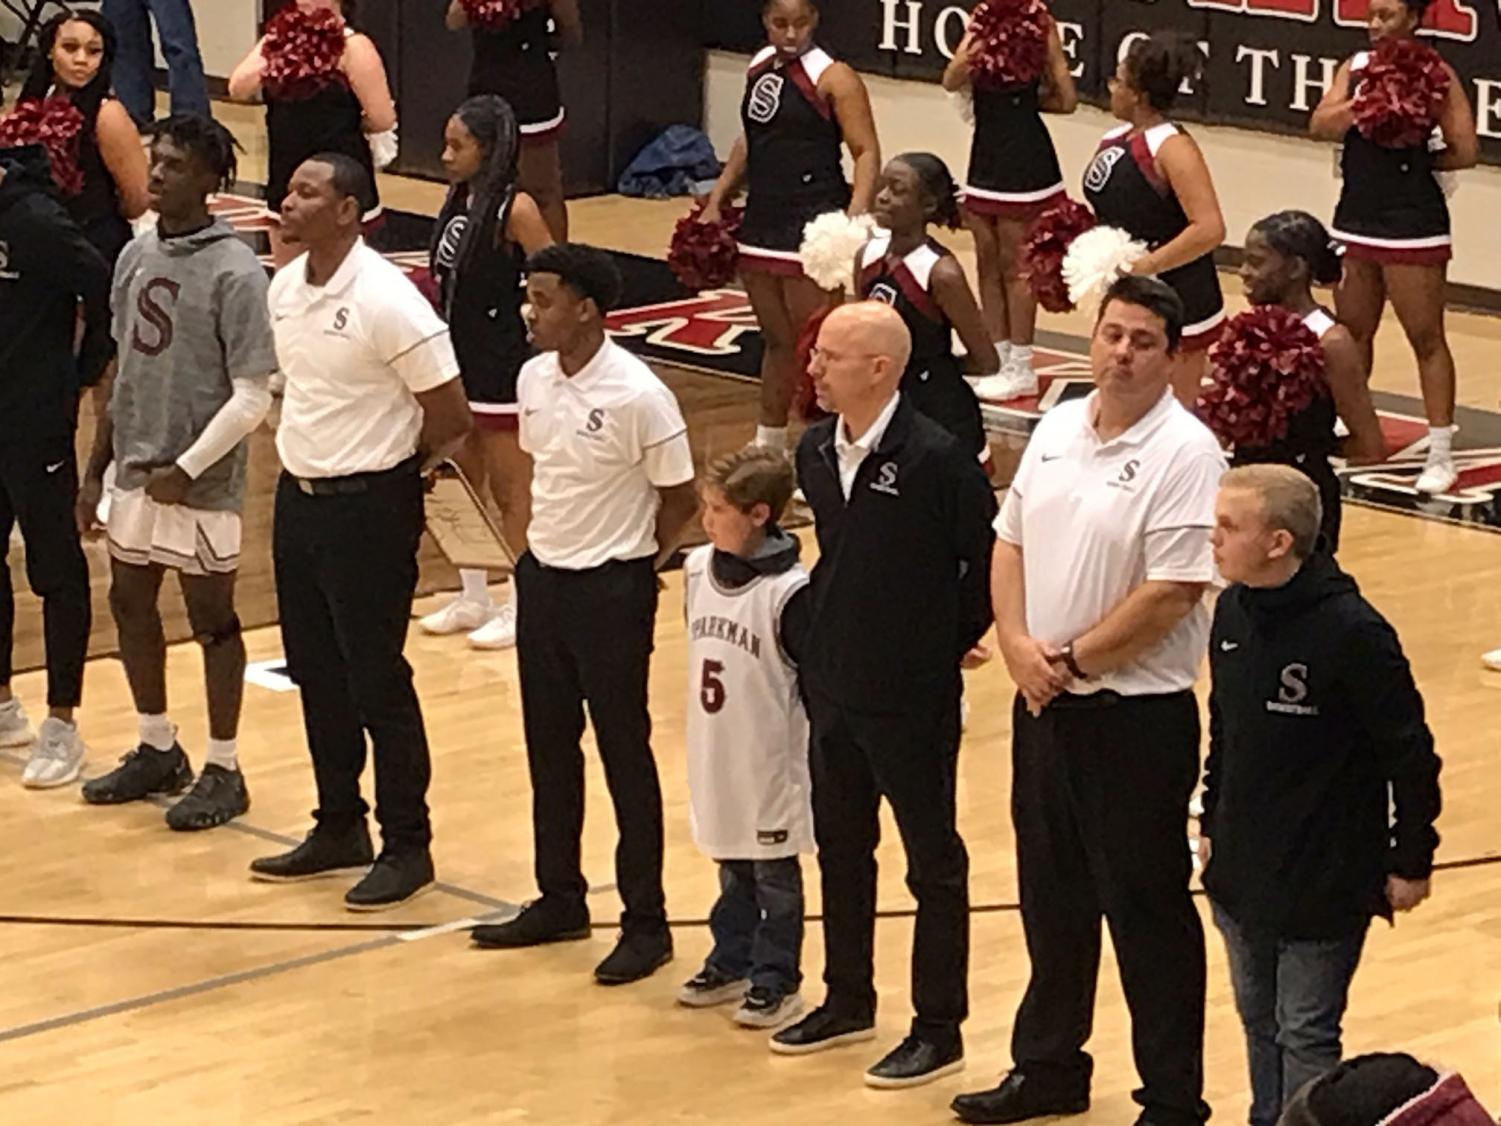 Monrovia Elementary student, Trey Hall, stands next to coach Jamie Coggins during the National Anthem.